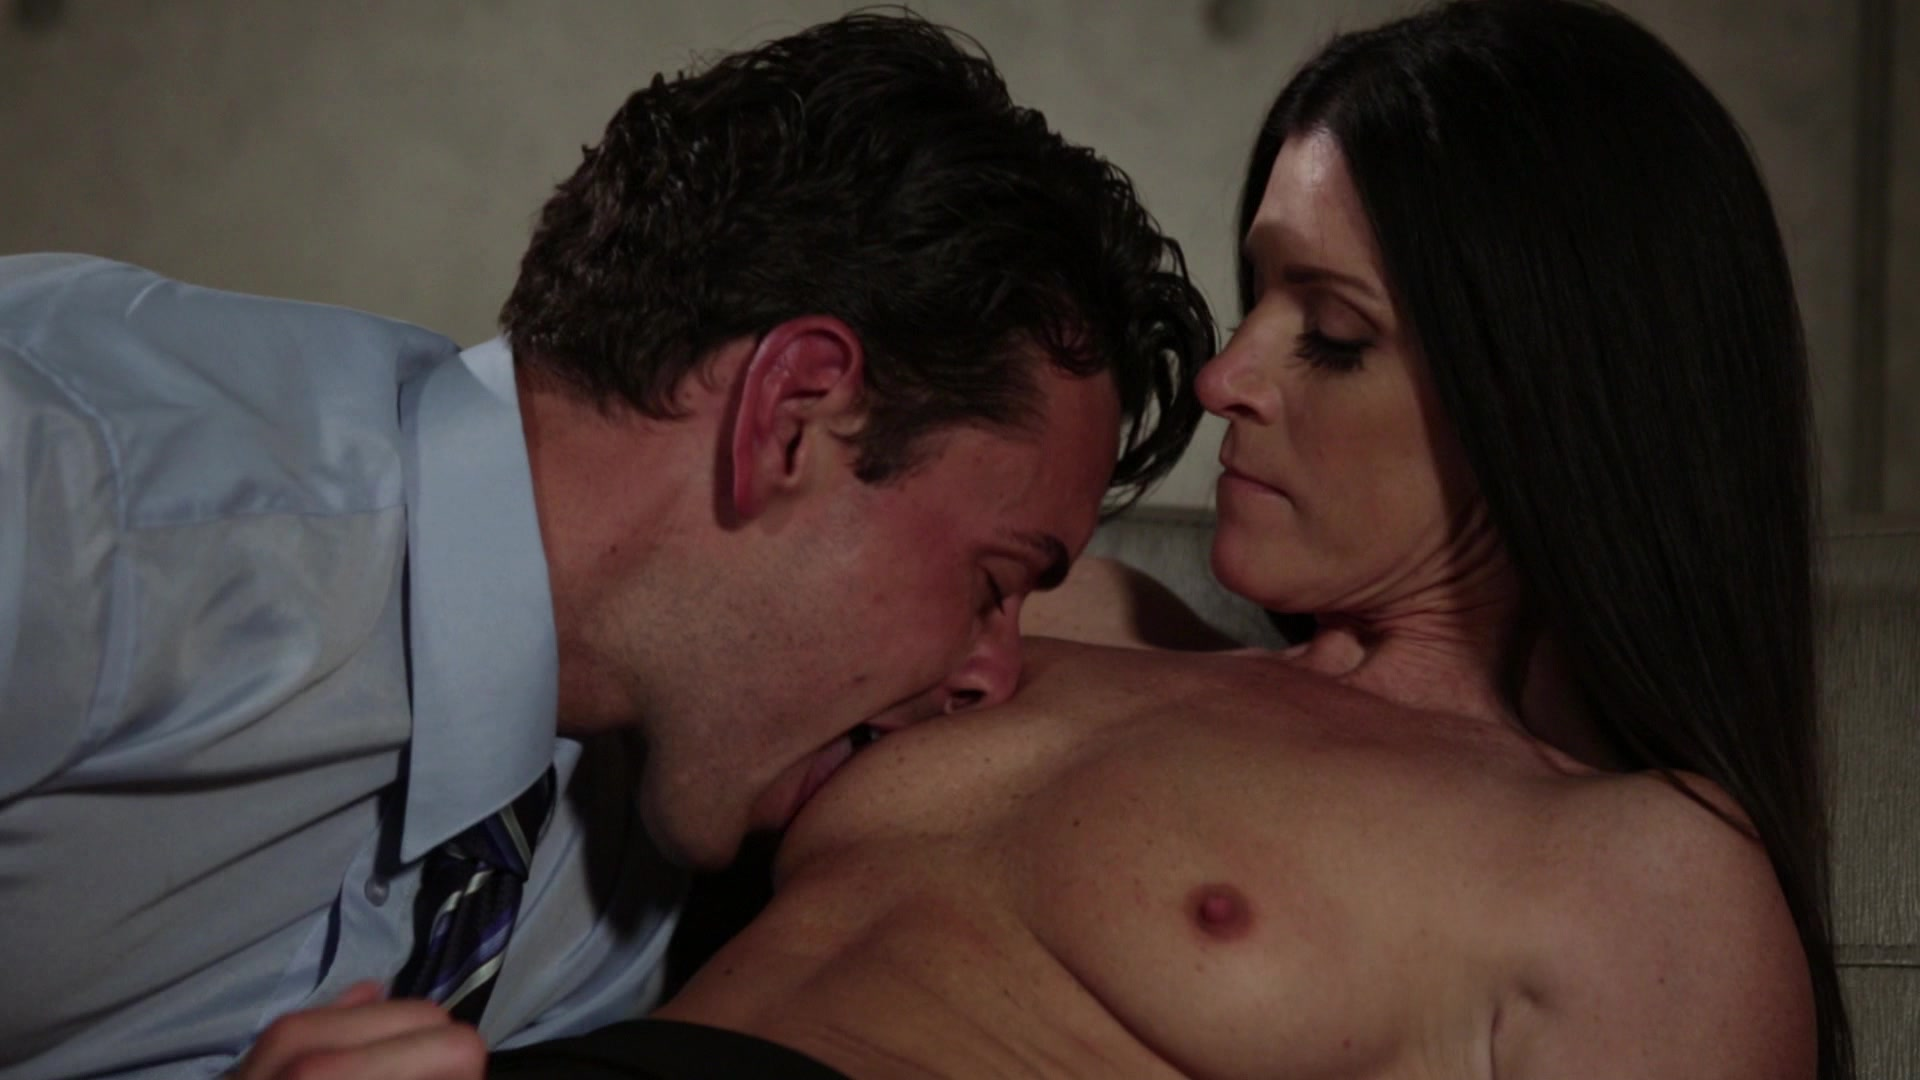 Scene with India Summer - image 10 out of 20